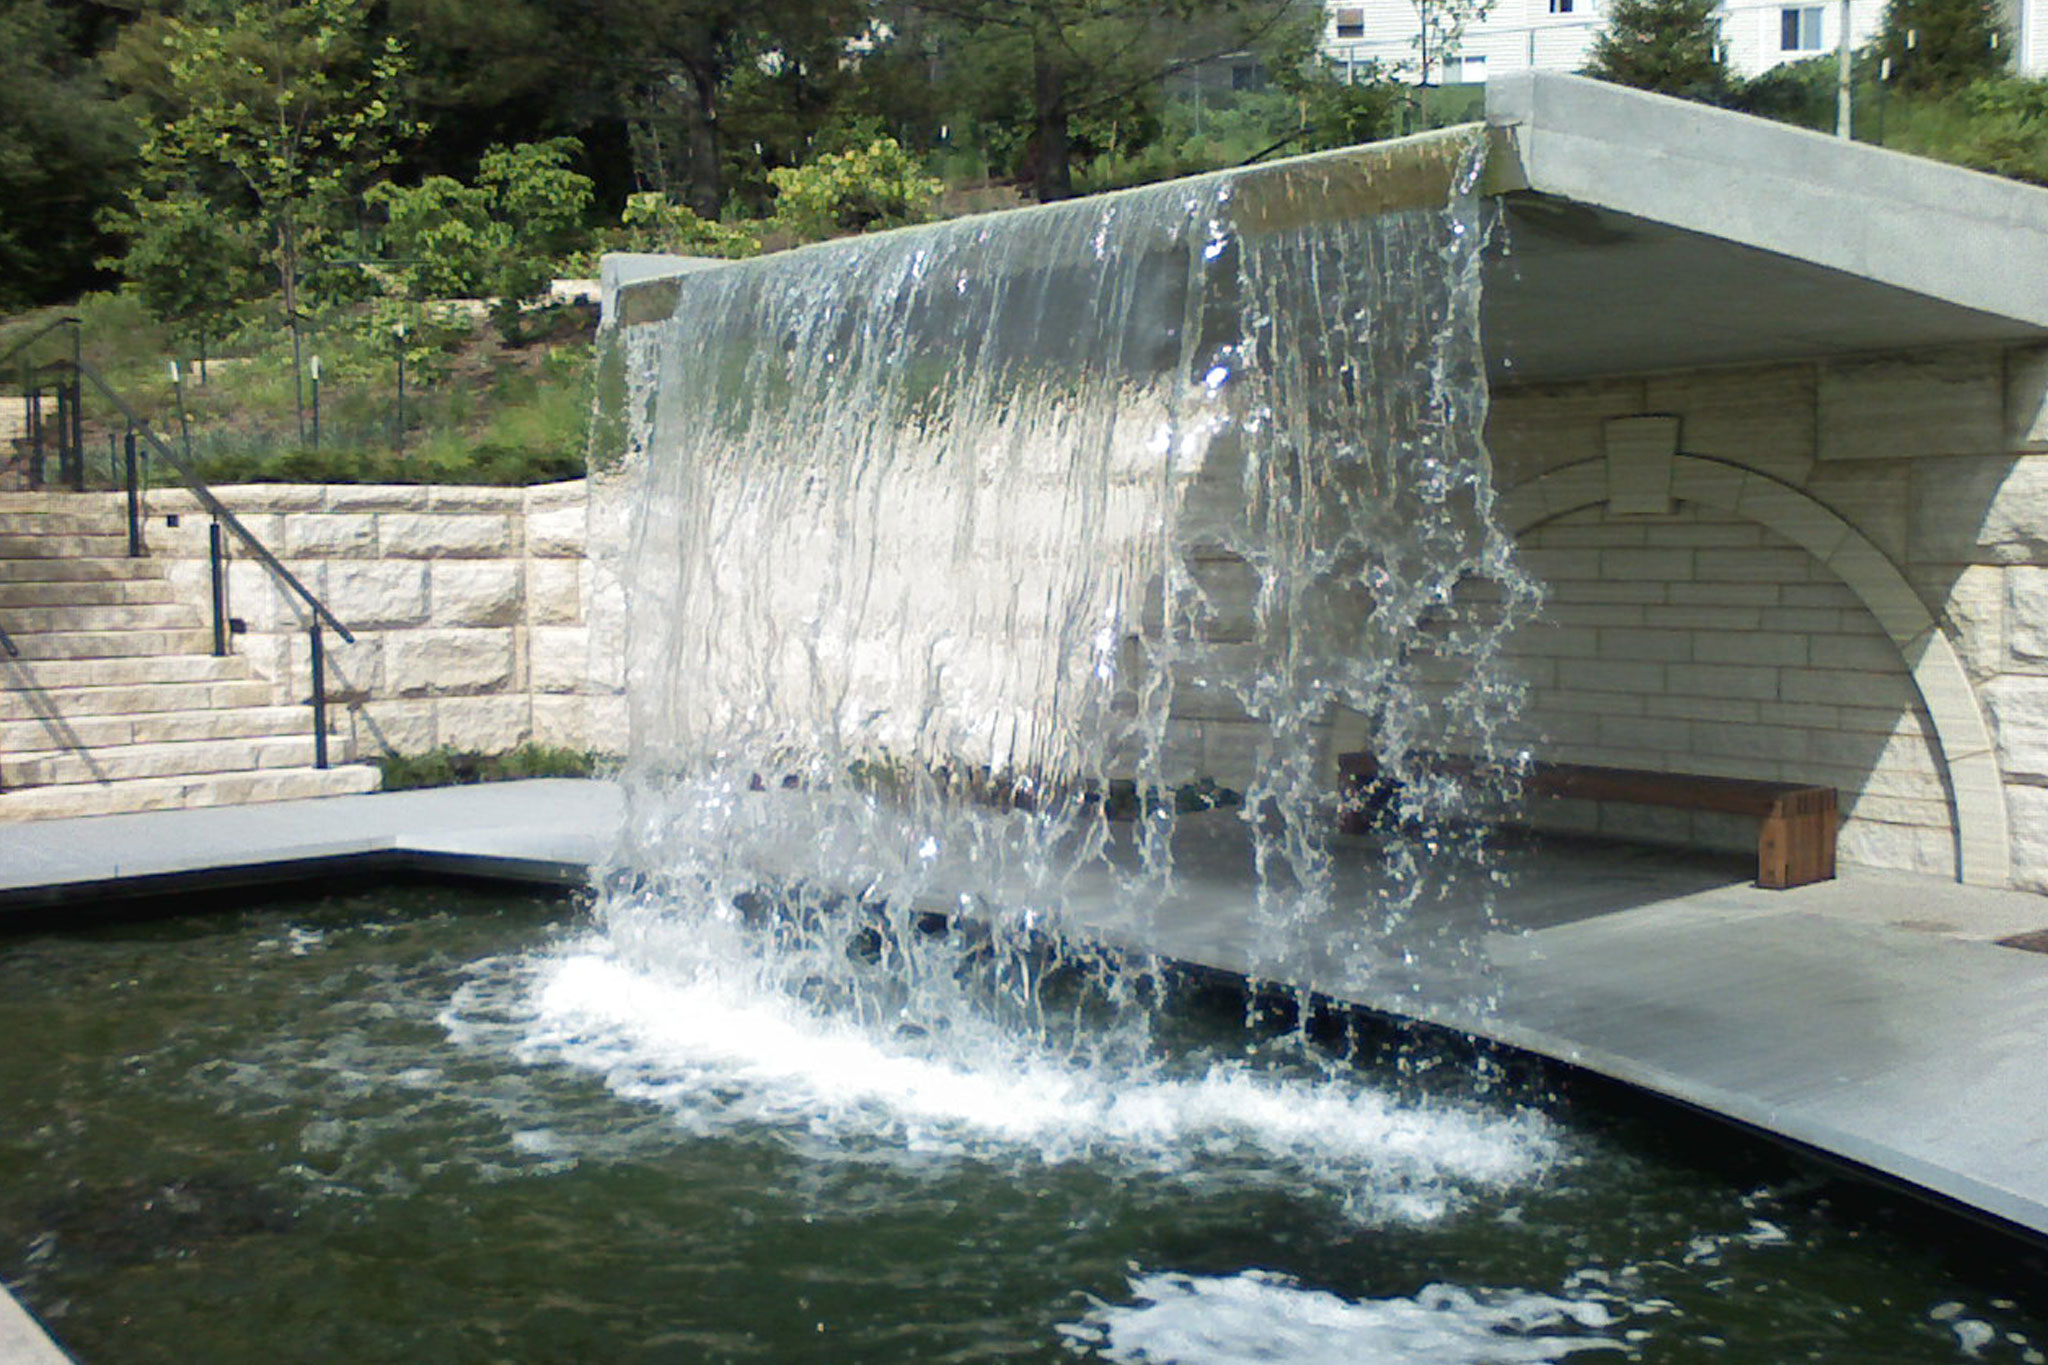 Des moines botanical garden waterfall delta fountains for Garden waterfall